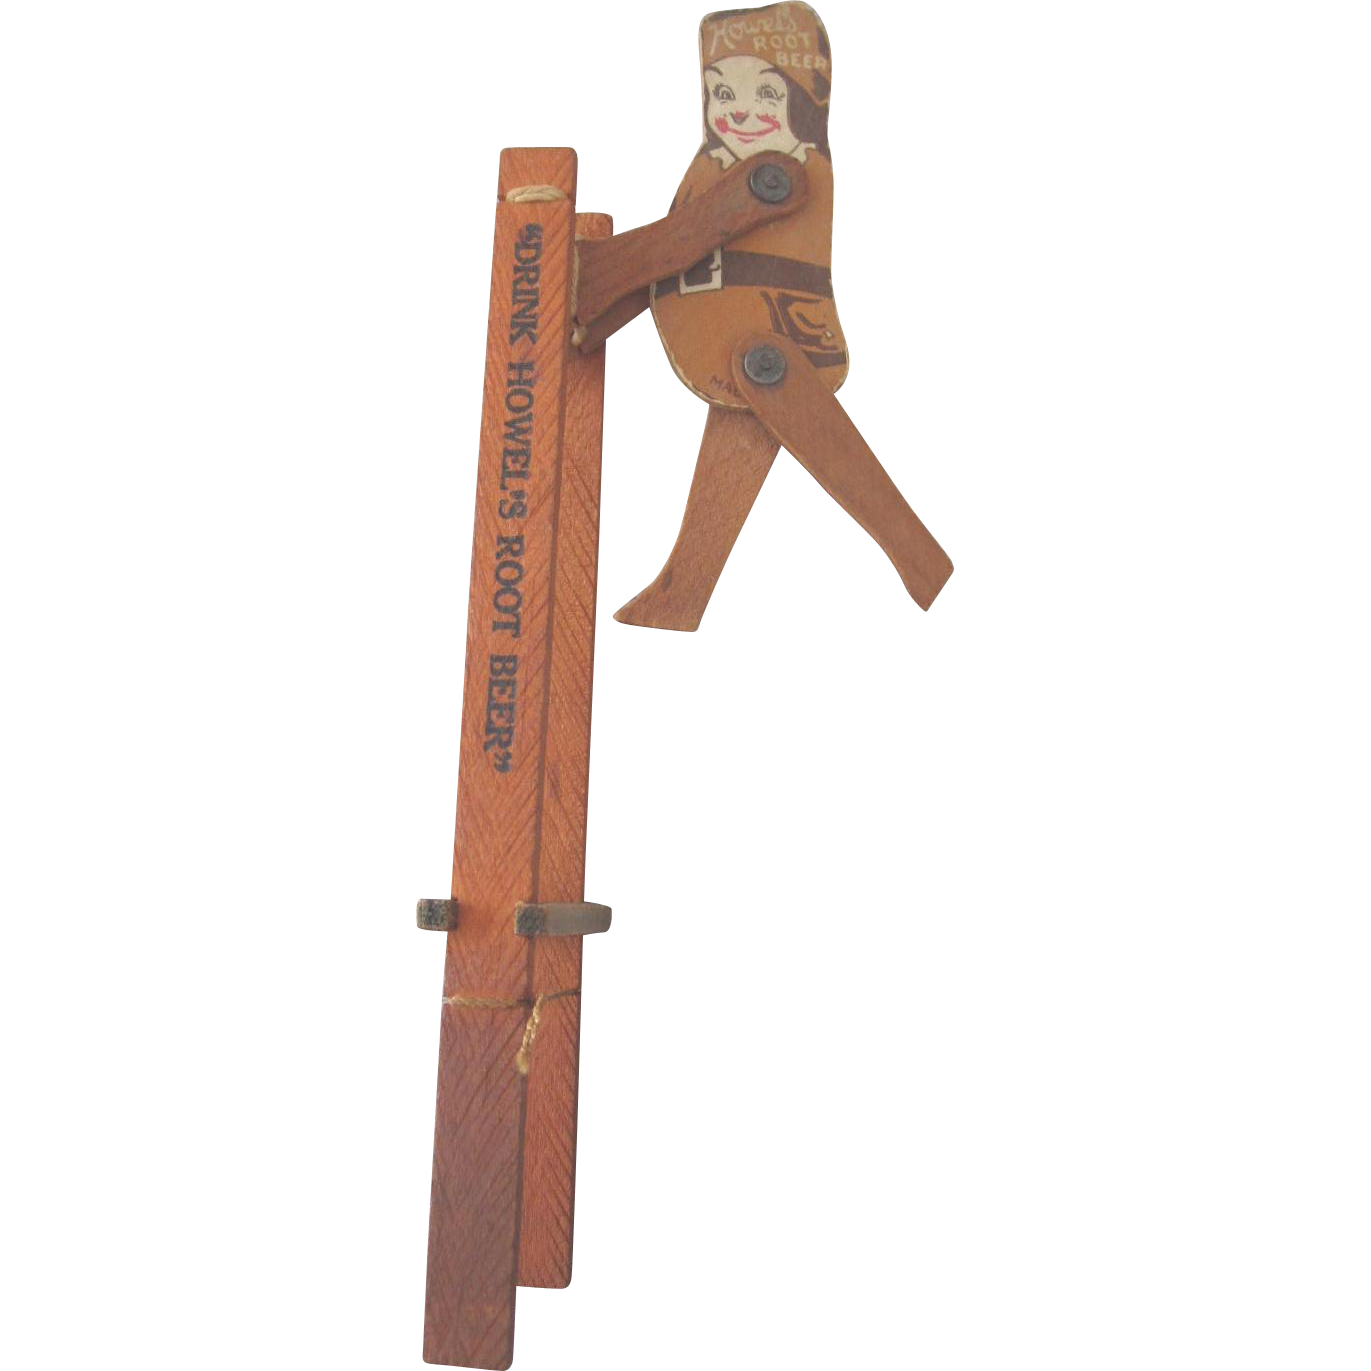 Vintage Advertising Toy: Howel's Root Beer Child's Trapeze Acrobatic Piece